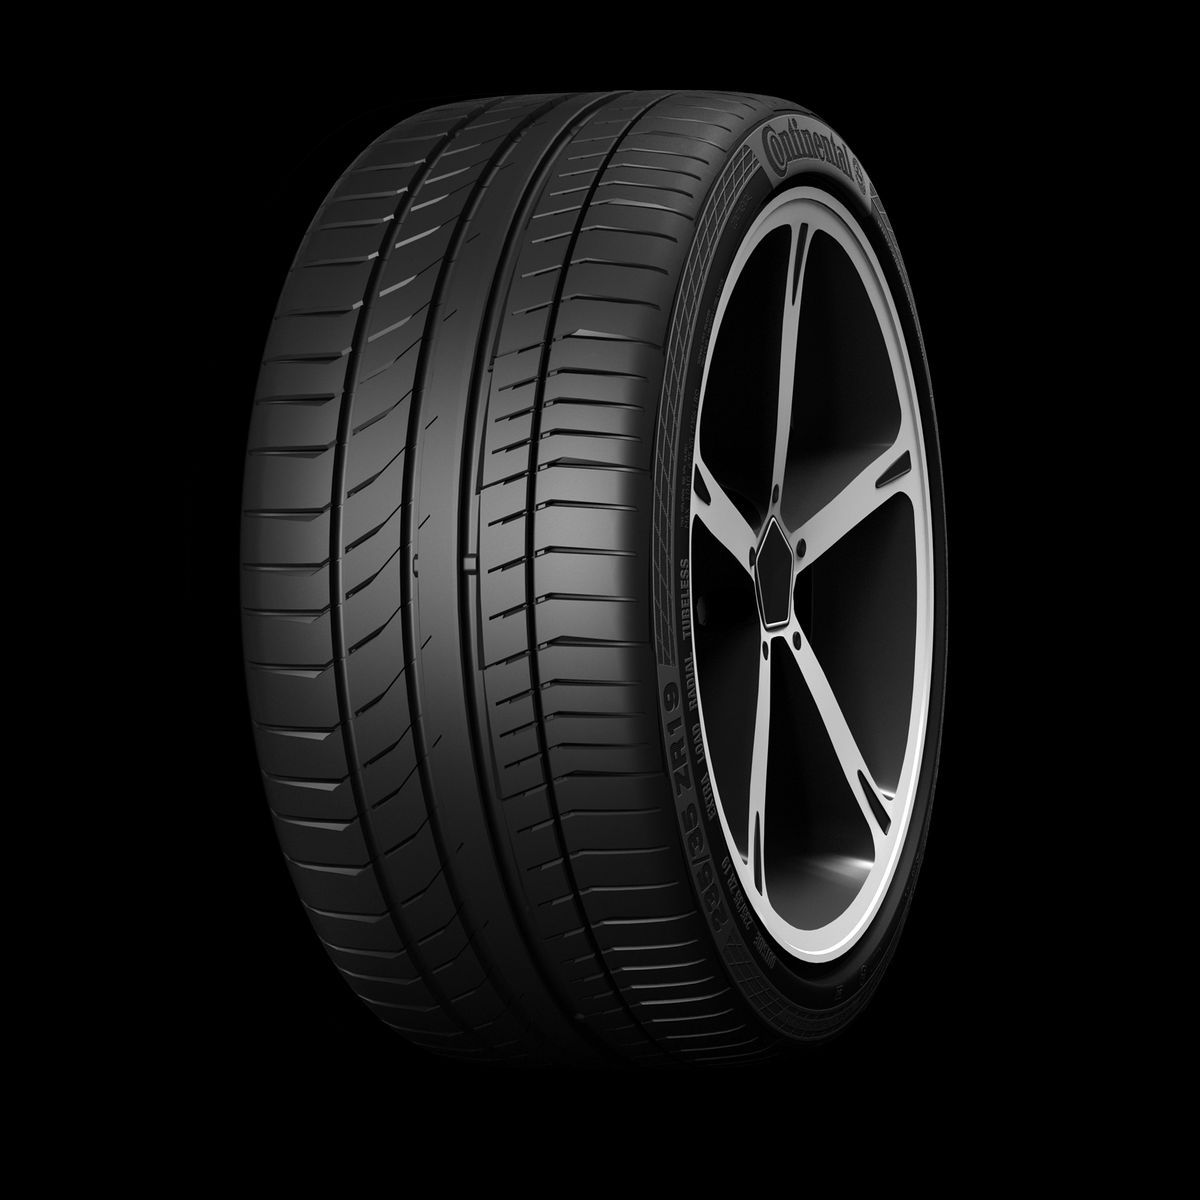 | ContiSportContact 5P Continental Performance Tire